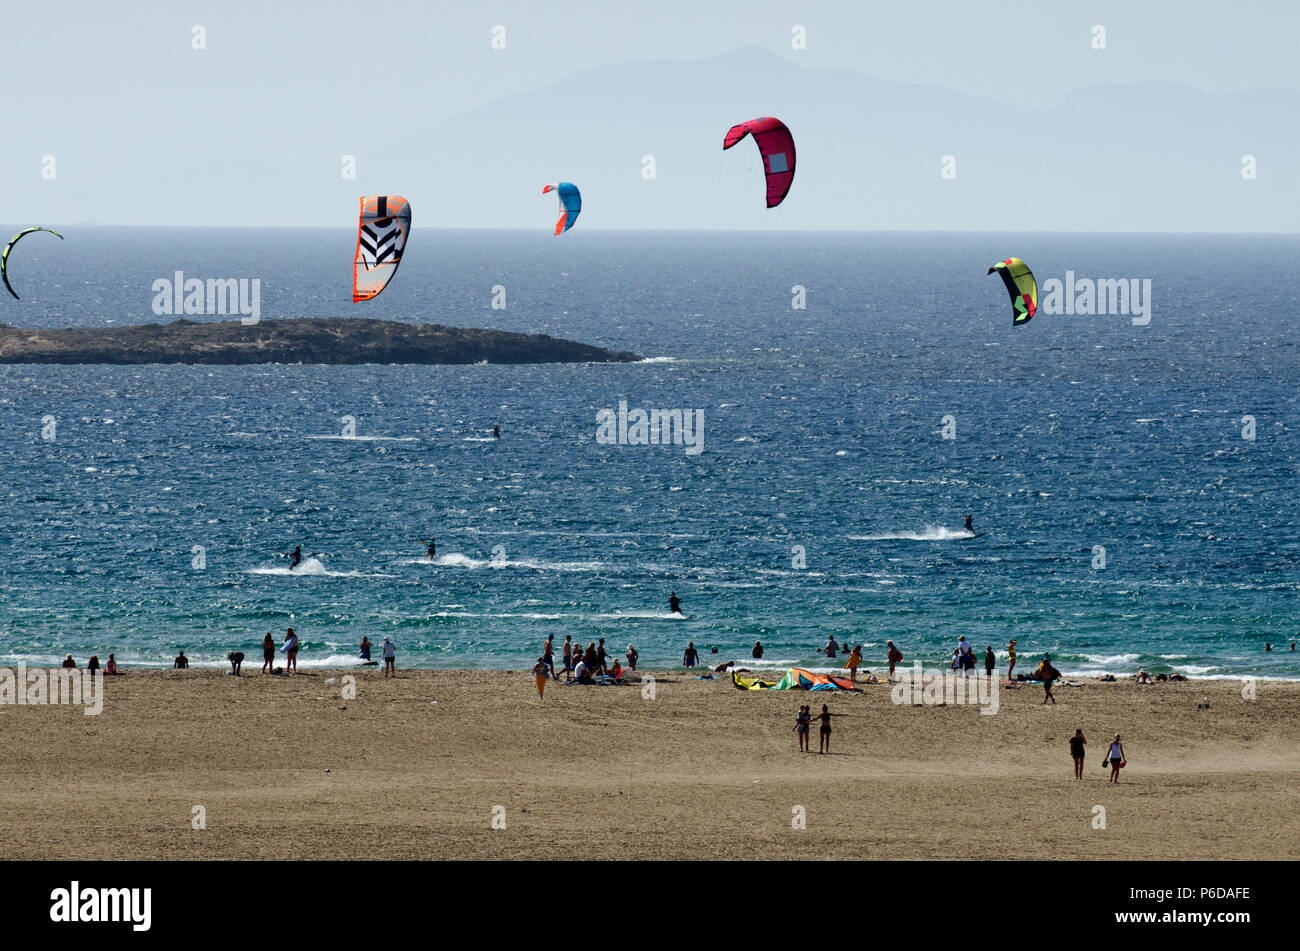 Sandy beach and the kitesurfers on the waves of the Aegean sea at Prasonisi (Greece) - Stock Image